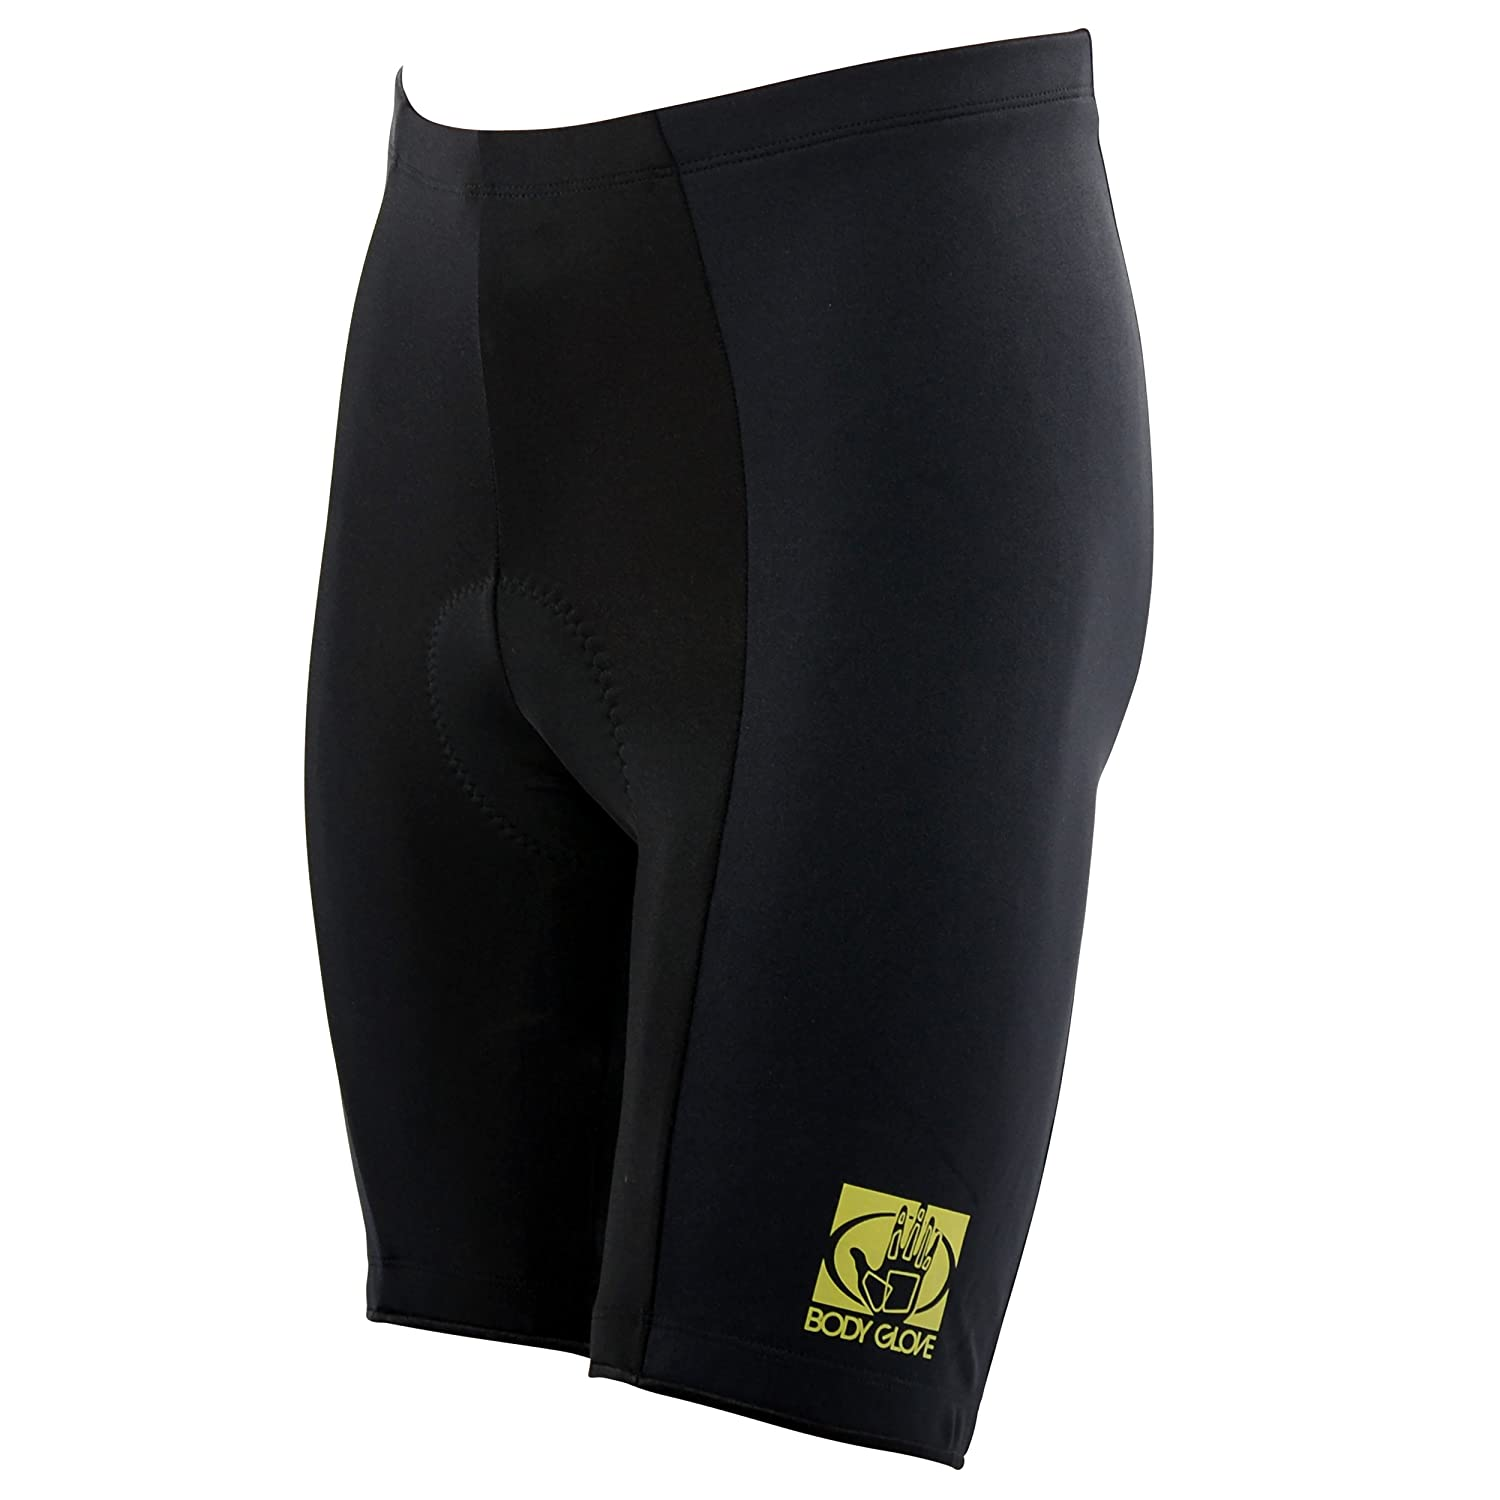 Body Glove Neo ATB Cycling Short Cycle Force Group BGNEOP-MD-P